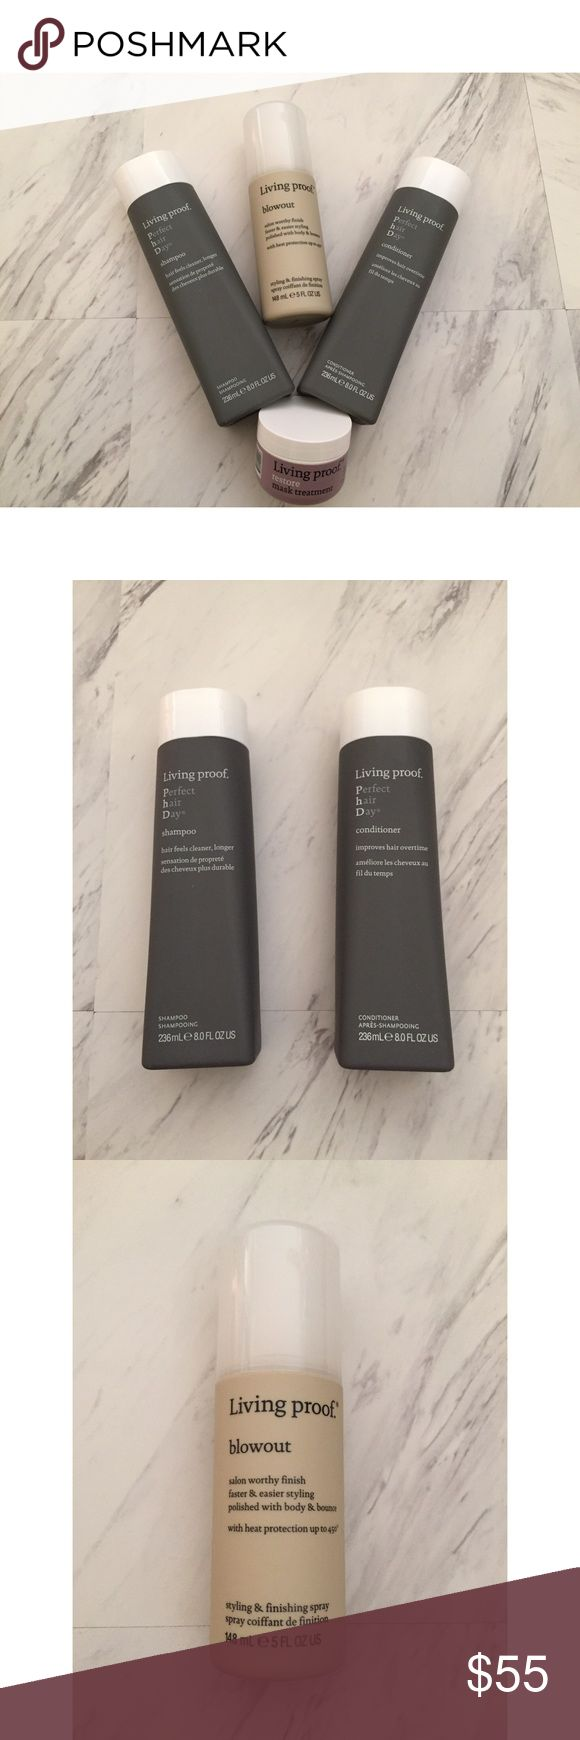 Living Proof Hair Set - Shampoo/Conditioner Living Proof Hair Set* Brand New - Never Used Living Proof Perfect hair Day Shampoo & Conditioner  Retail Price: $25 Size: 236 mL | 8 oz Living Proof Blowout - Styling & Finishing Spray Retail Price: $24 Size: 148 mL | 5 oz Living Proof Restore Mask Treatment Retail Price: $12 Size: 28 g | 1 oz *Can be purchased together or individually Living Proof Other